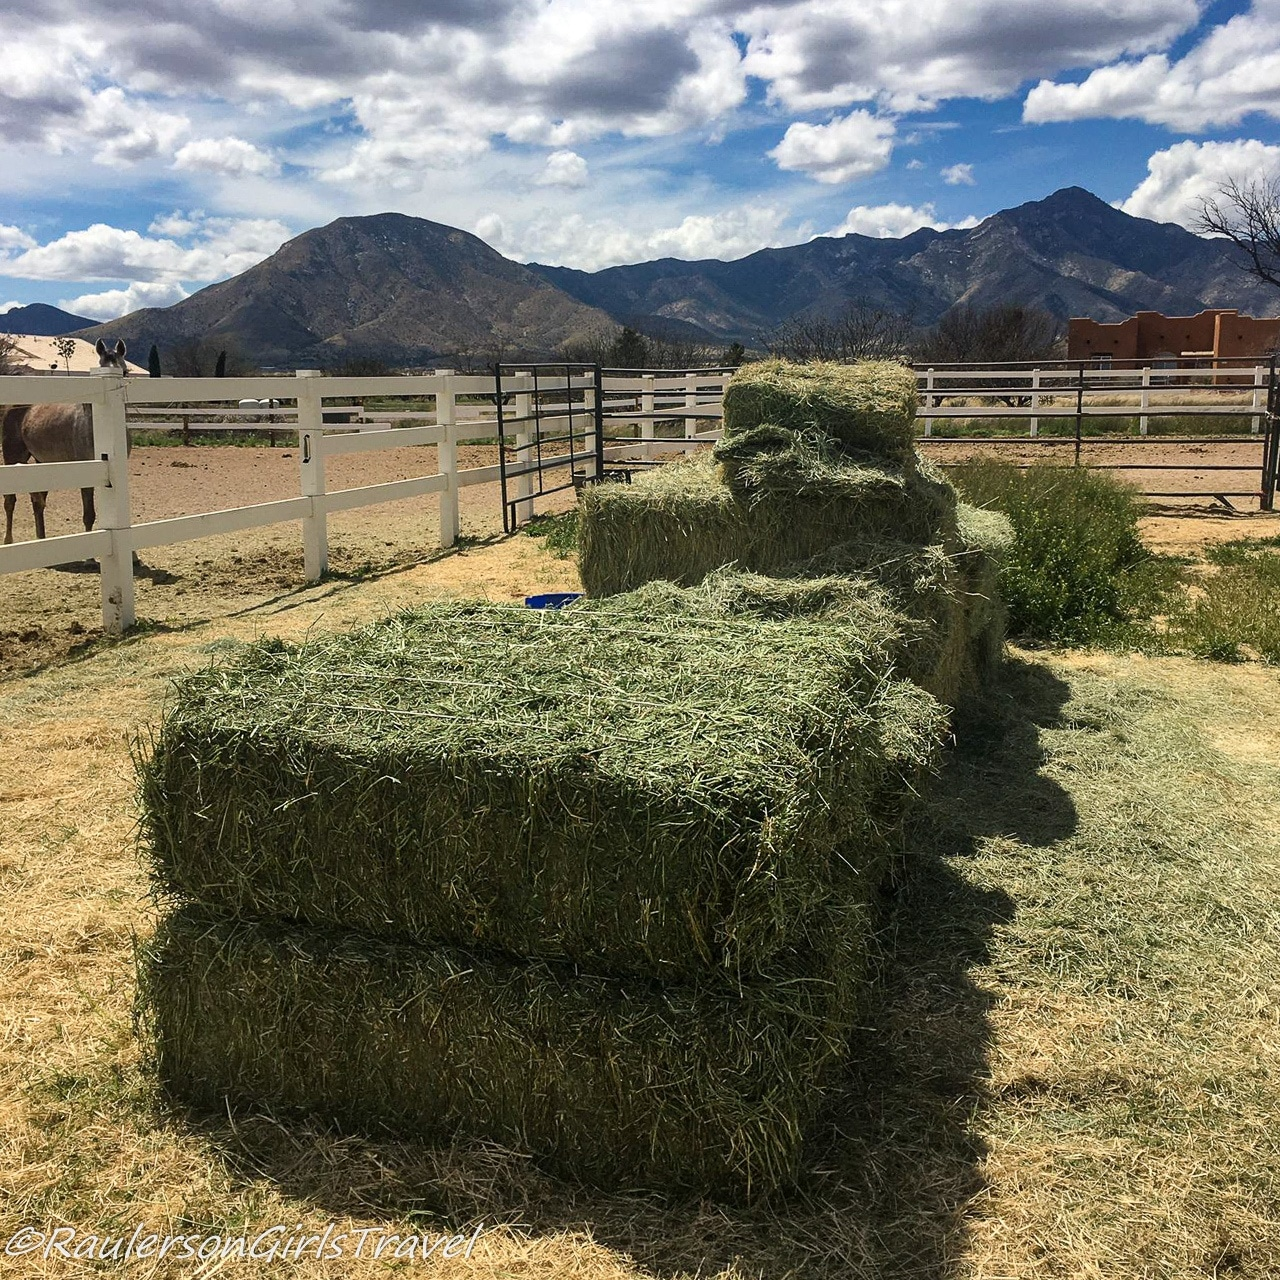 Stacks of Hay and Alfalfa for the horses